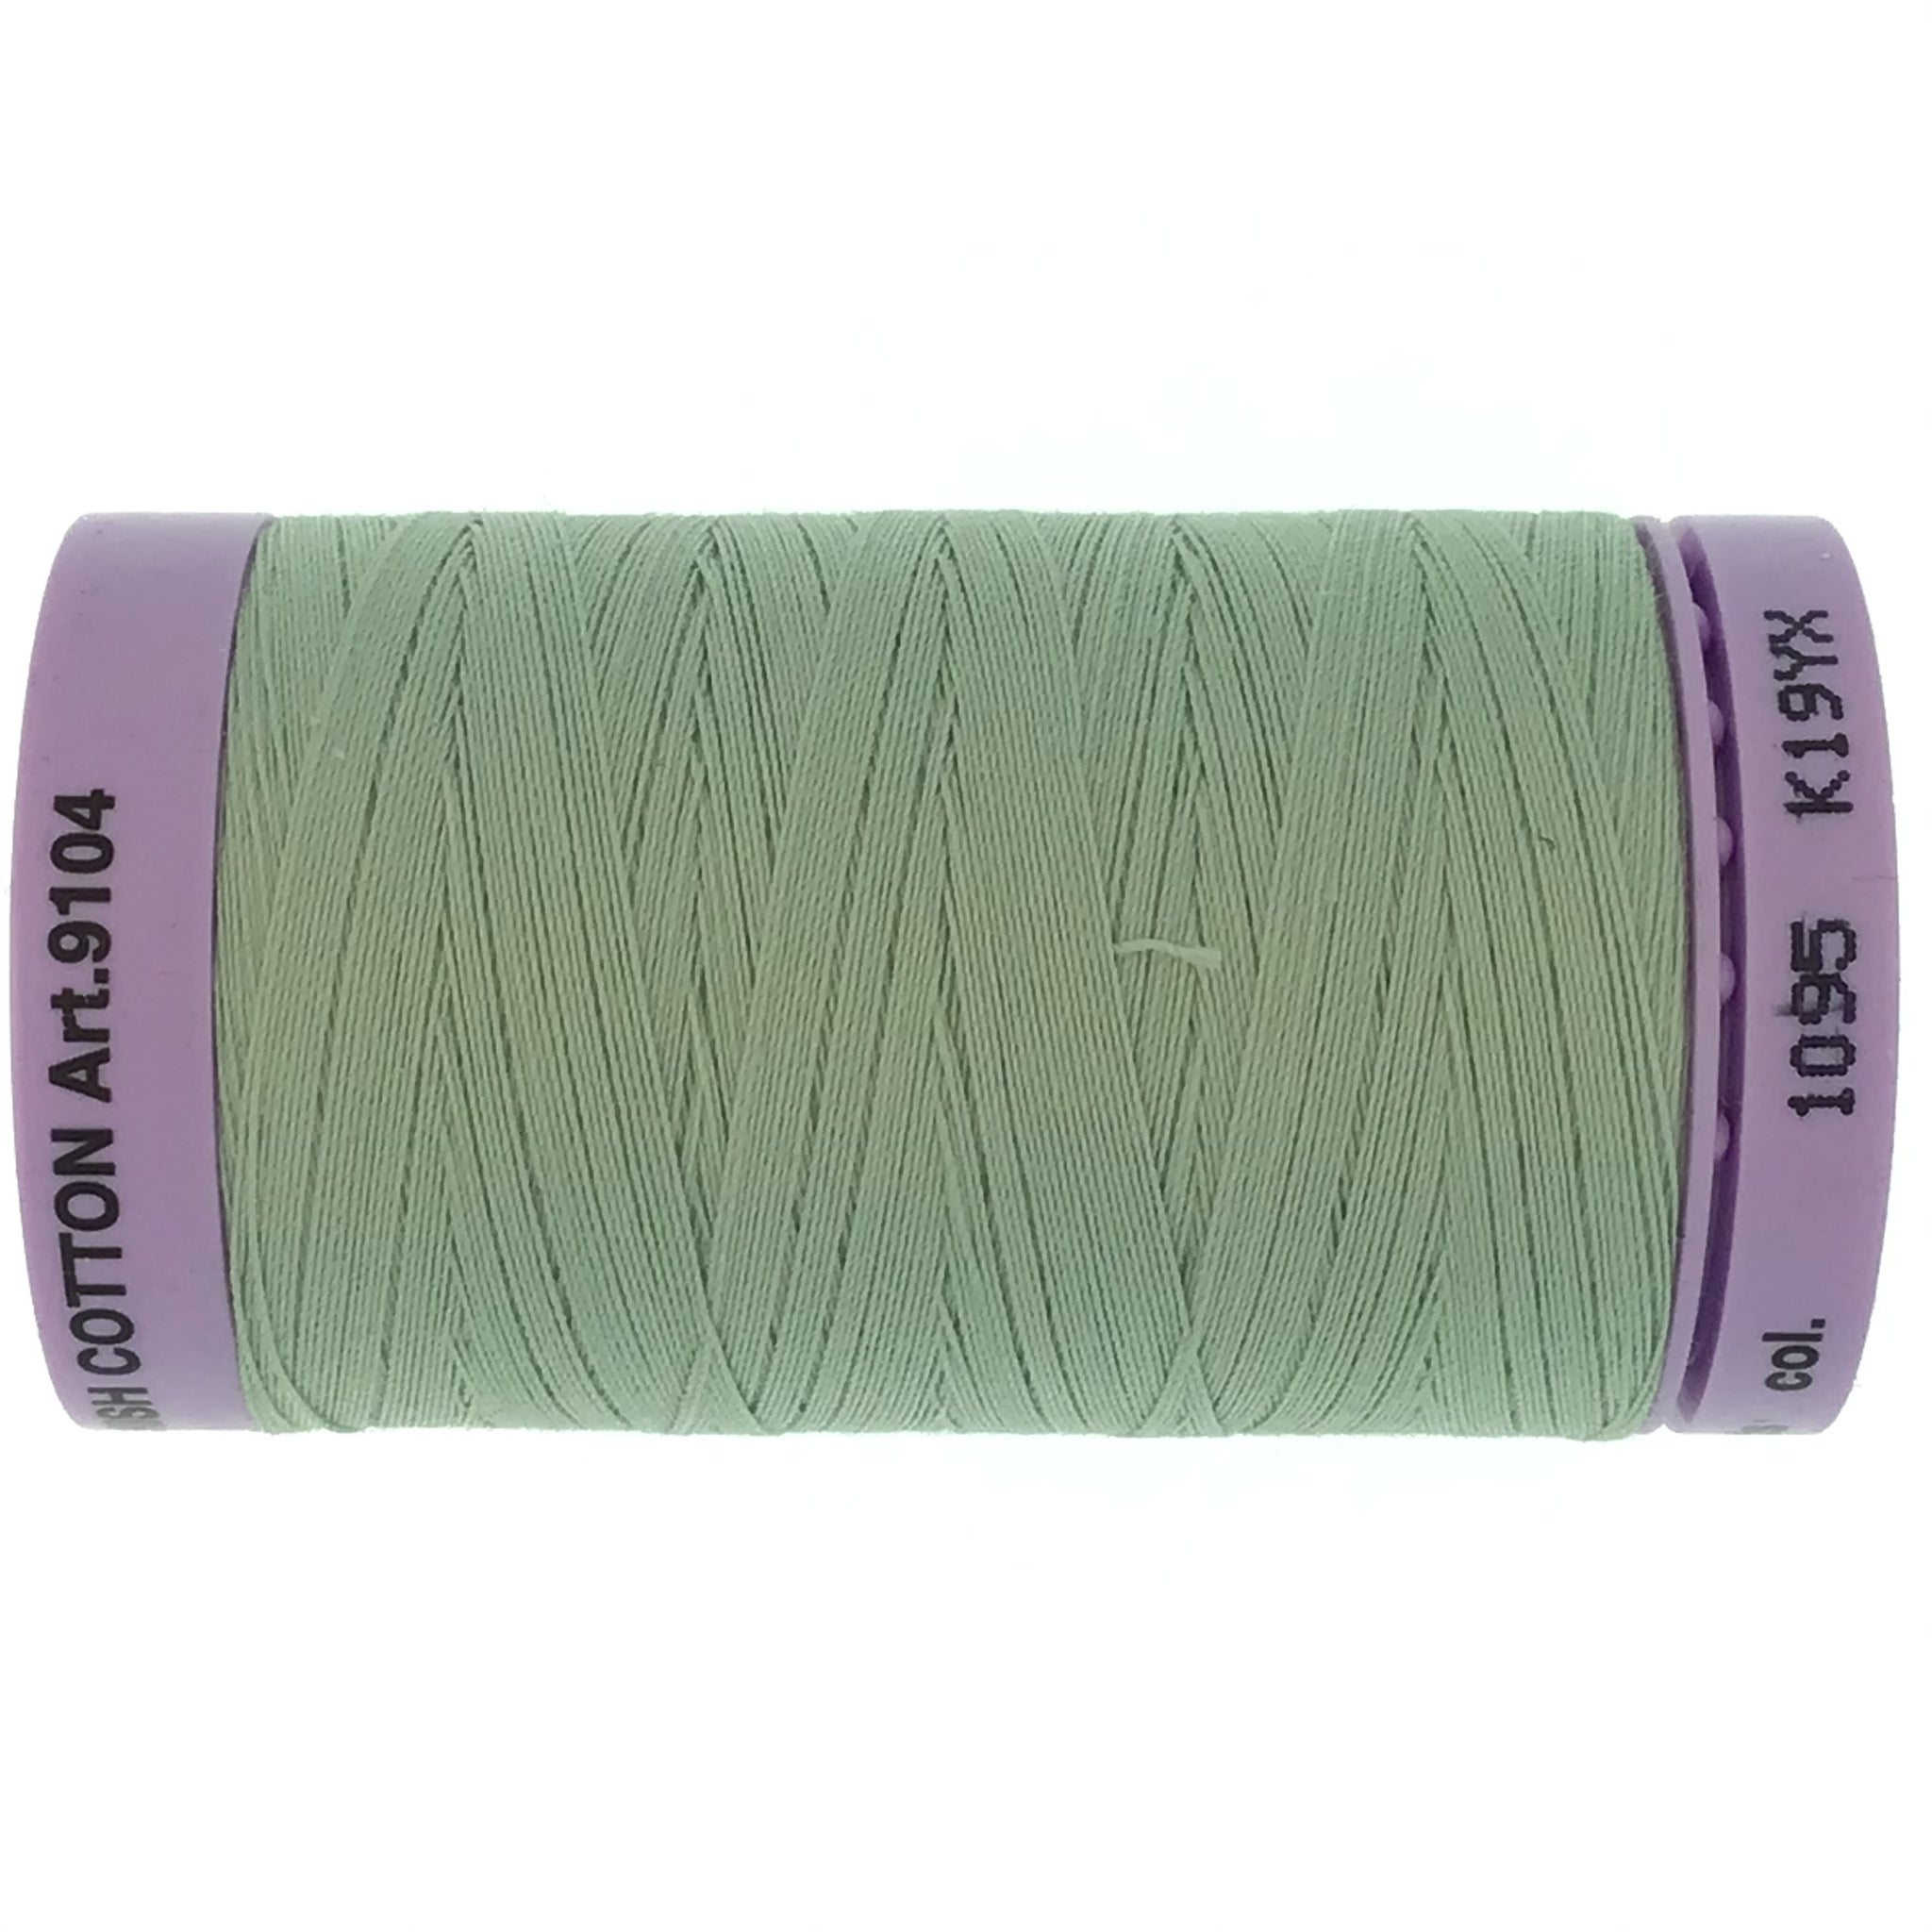 Mettler Cotton 50wt Thread - 500mt - 1095 - Sage Green